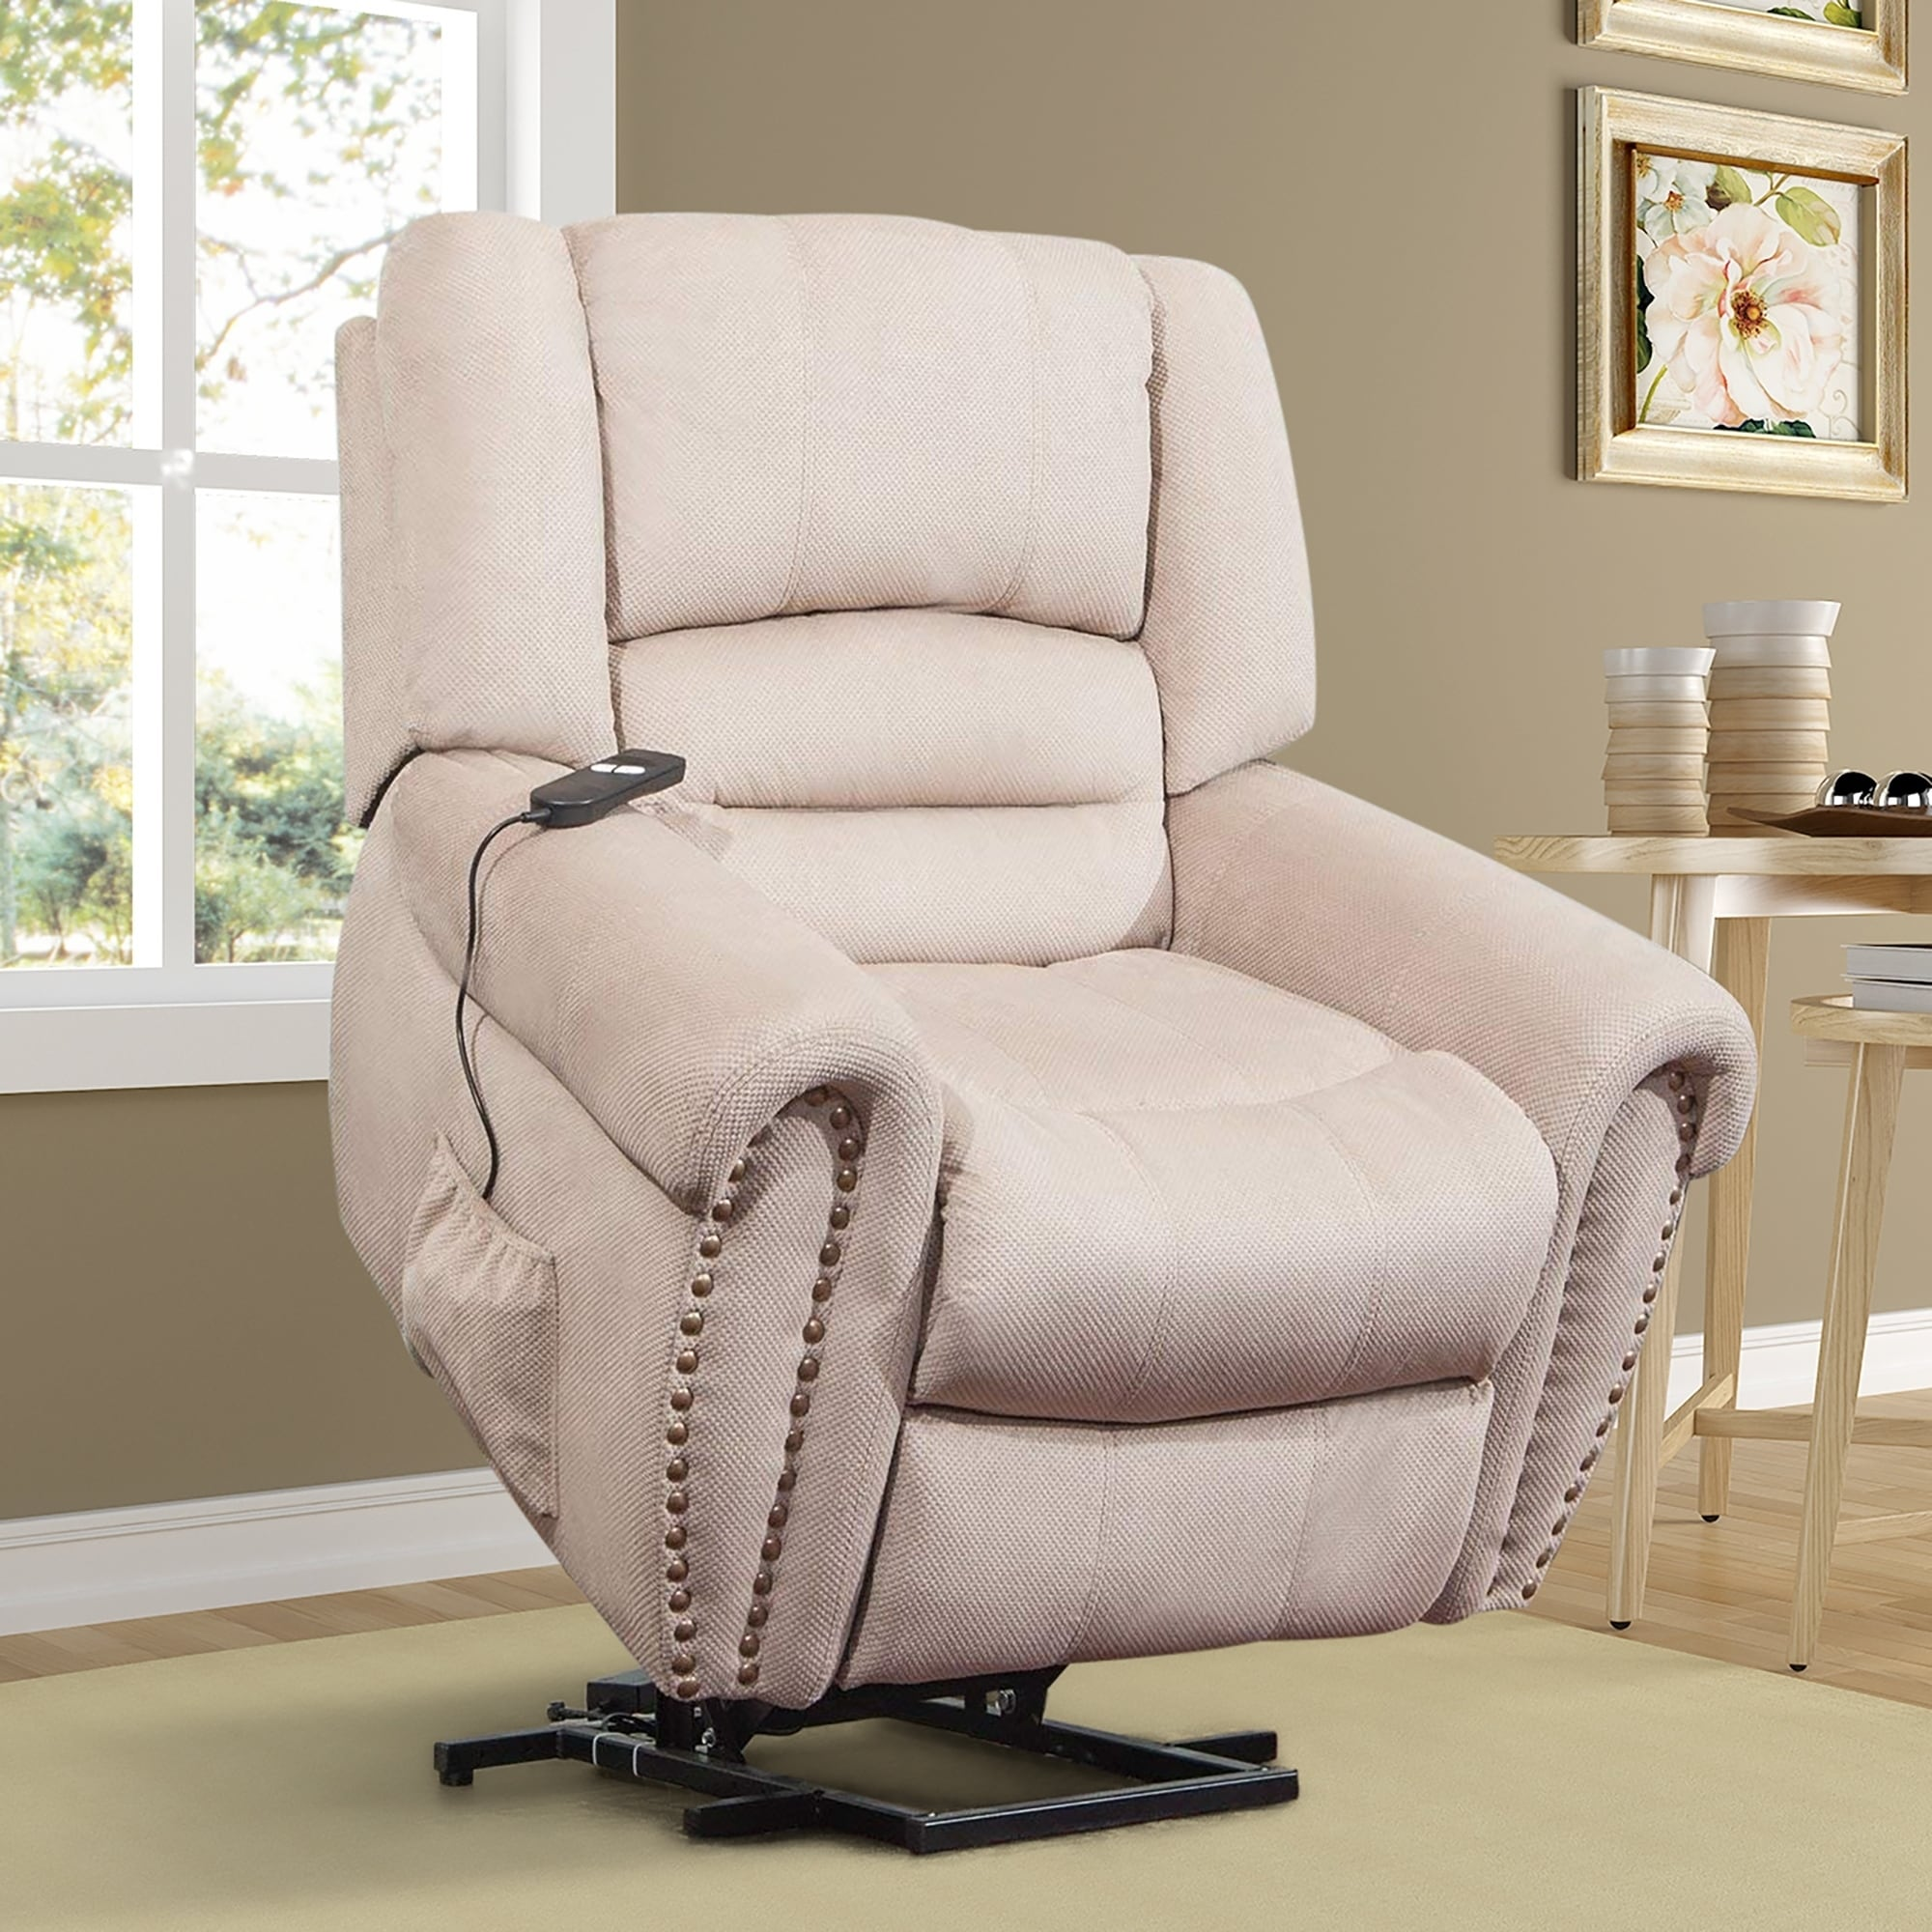 Copper Grove Makiivka Heavy Duty Power lift Recliner Chair with Built in Remote